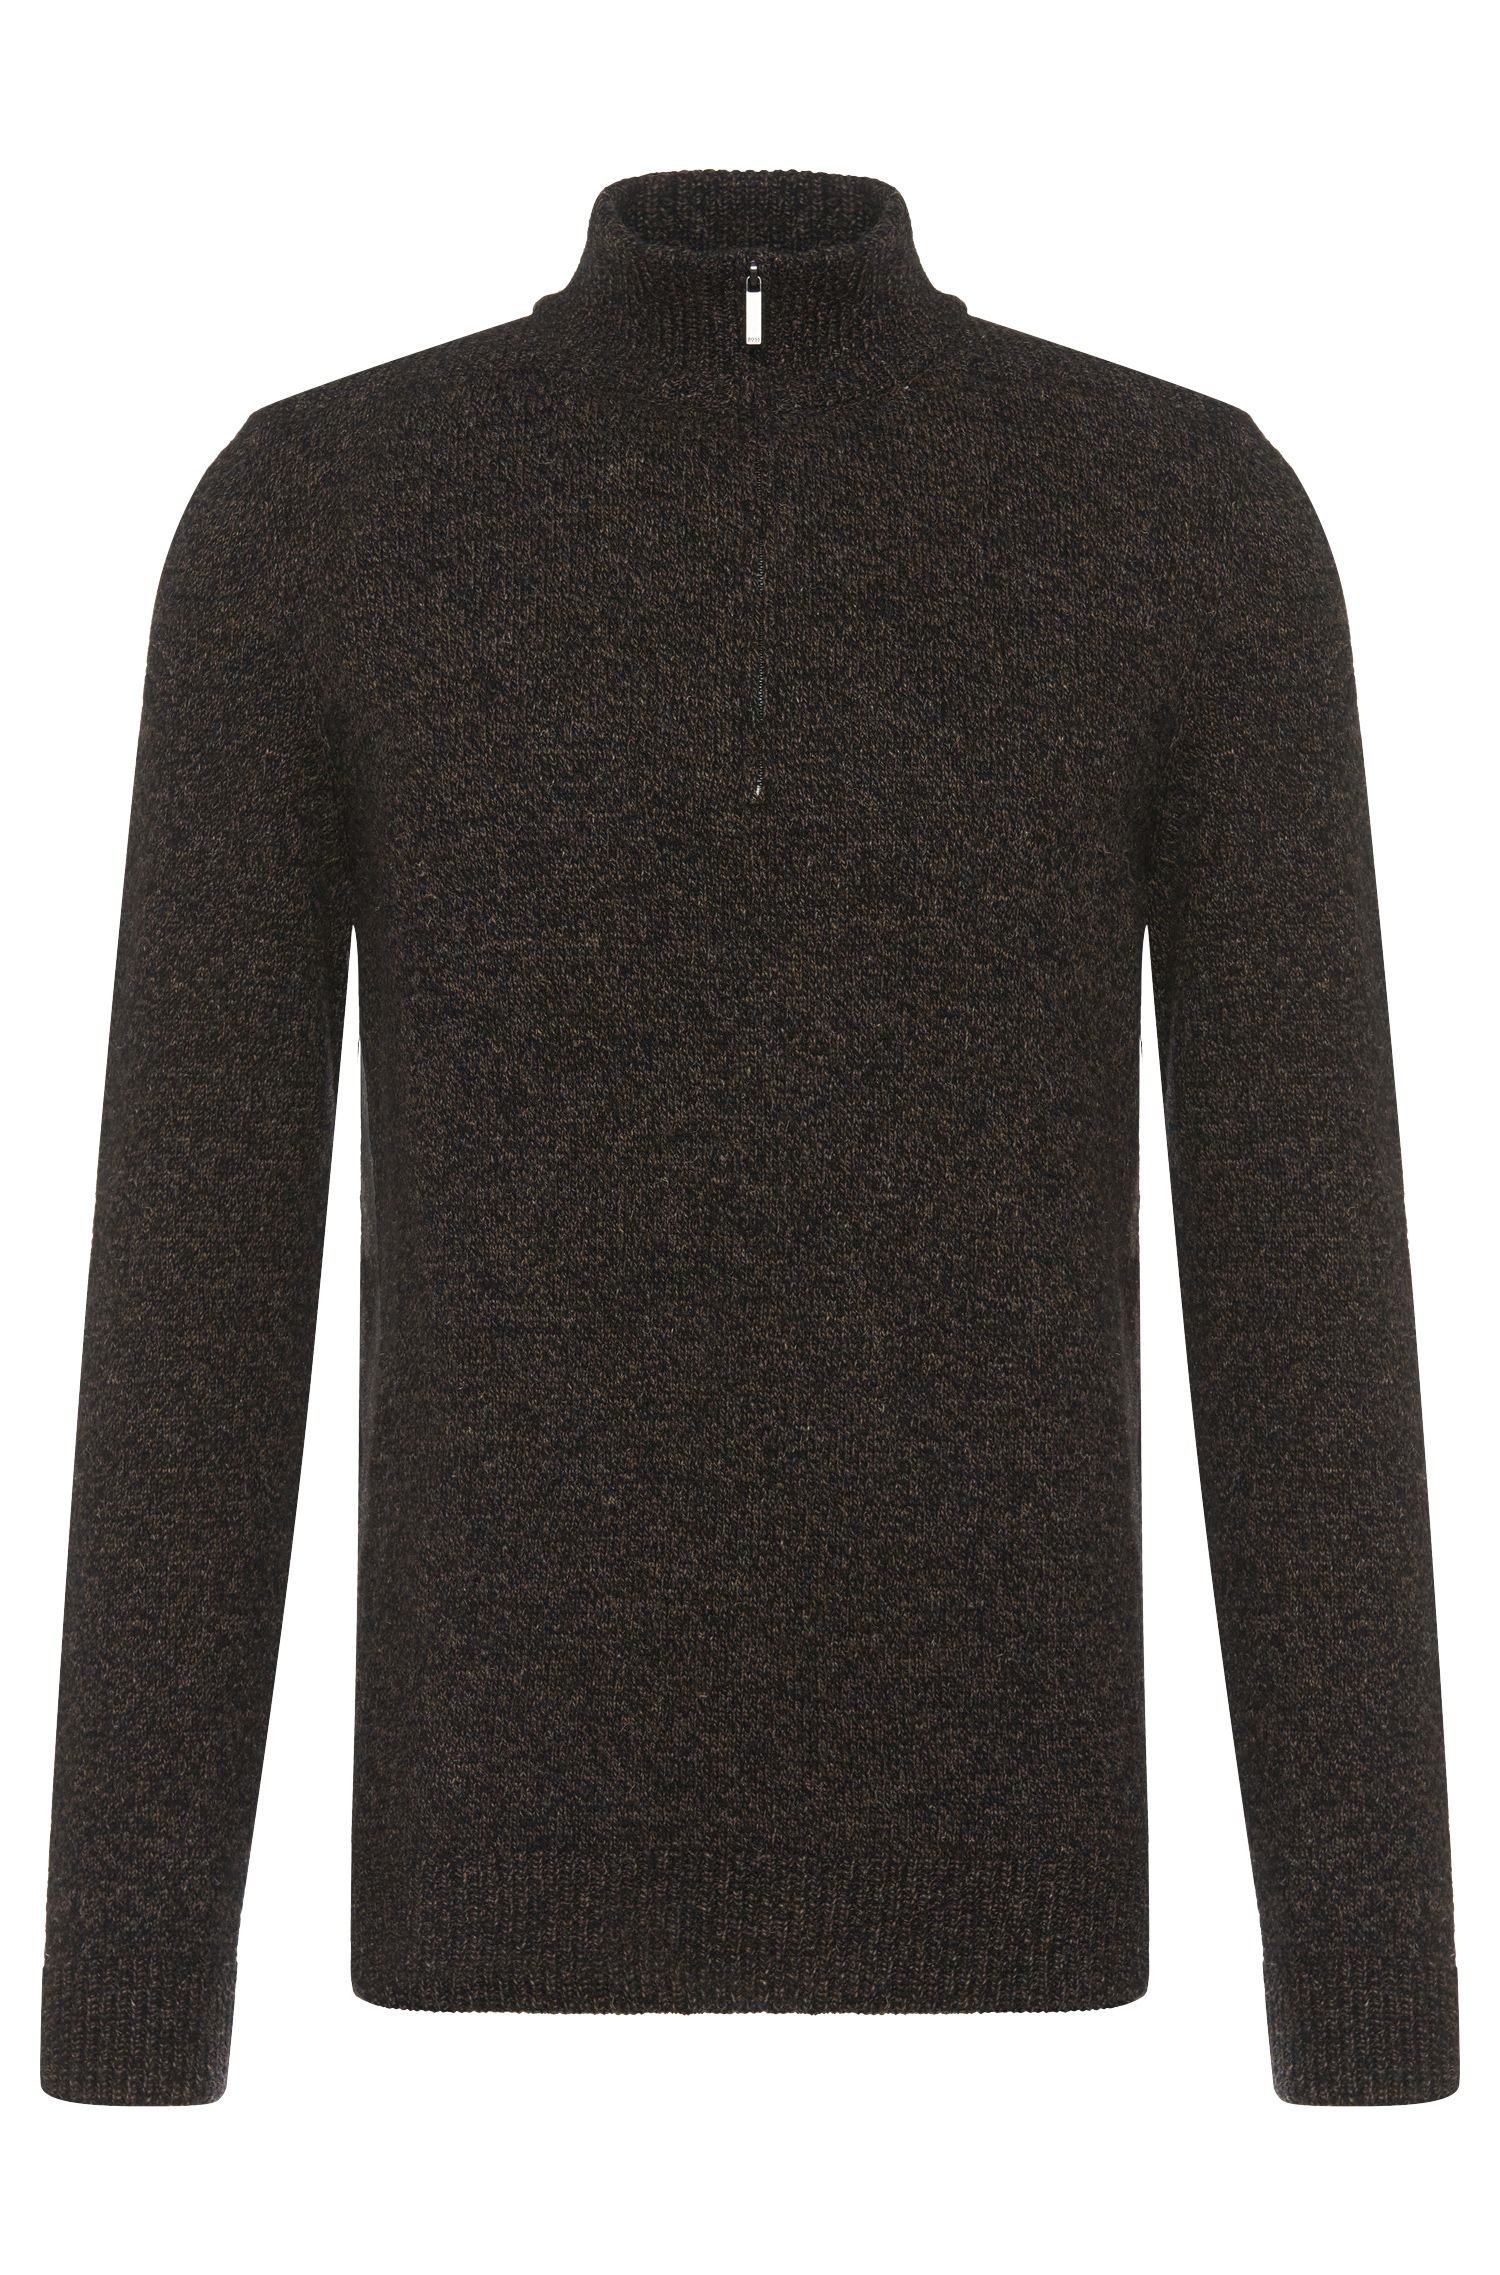 'Belmonte' | Stretch Wool Linen Blend Troyer Sweater